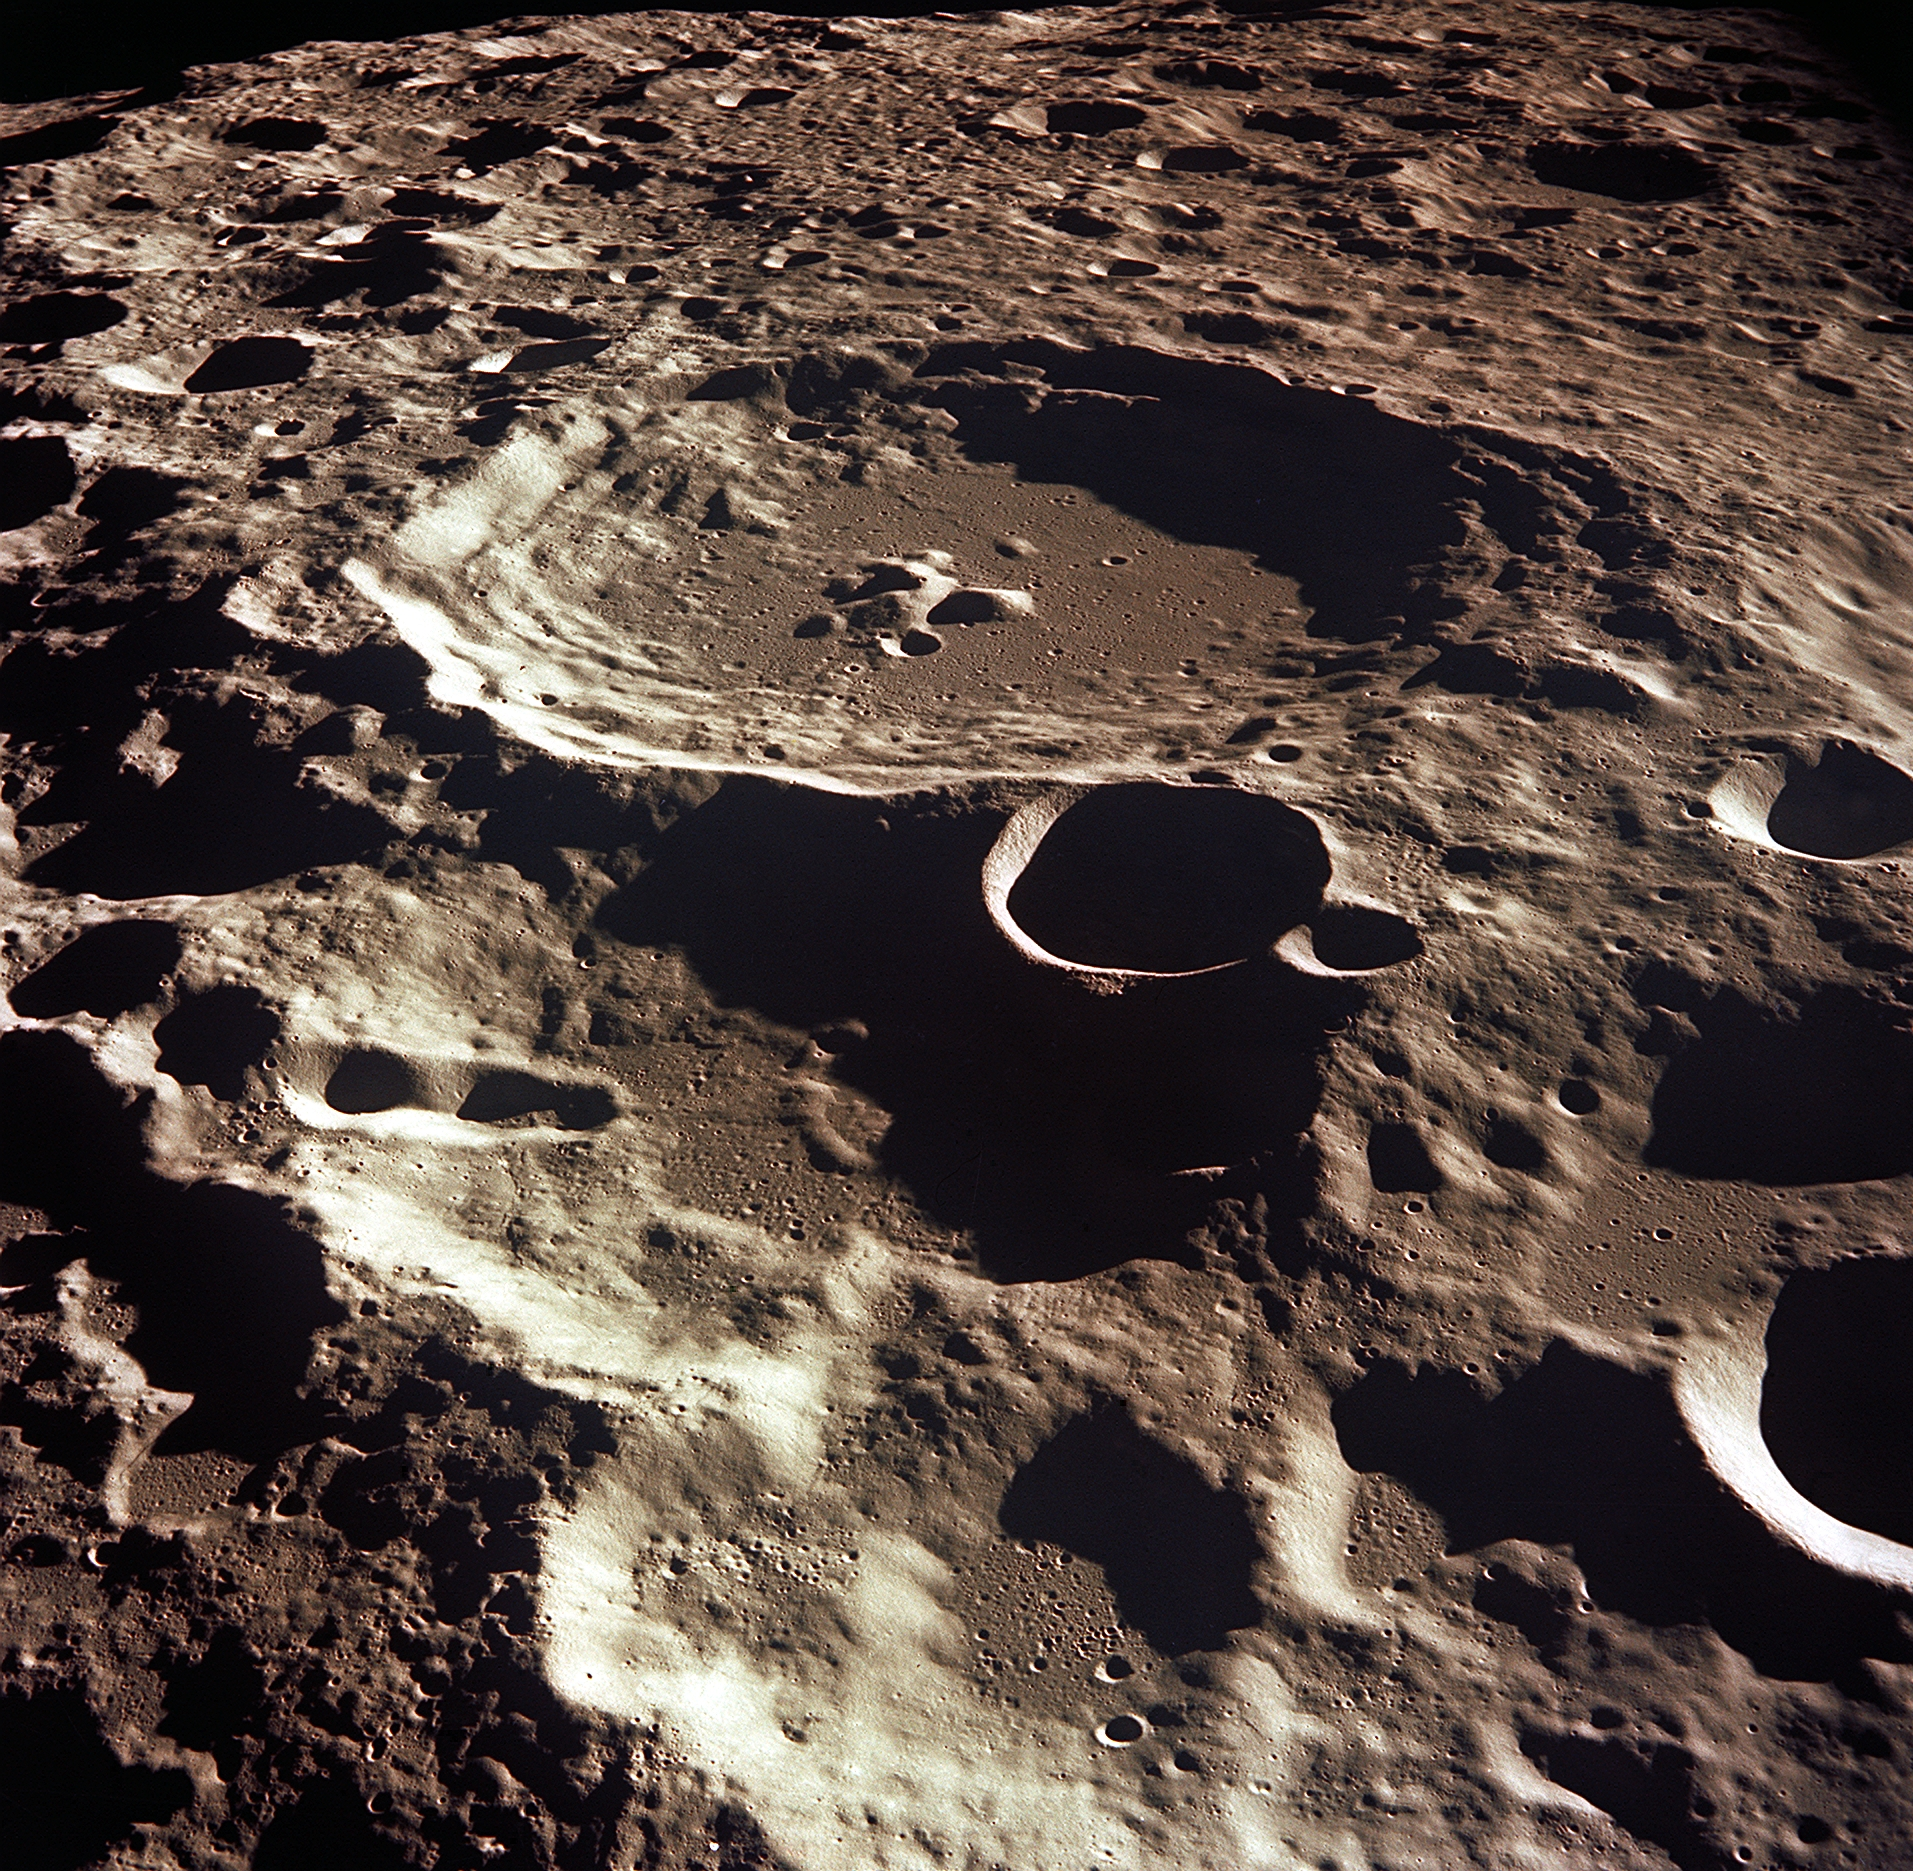 NASA-Funded Study Reveals Solar Storms Can Cause Dielectric Breakdown In Moon's Permanently Shadowed Regions